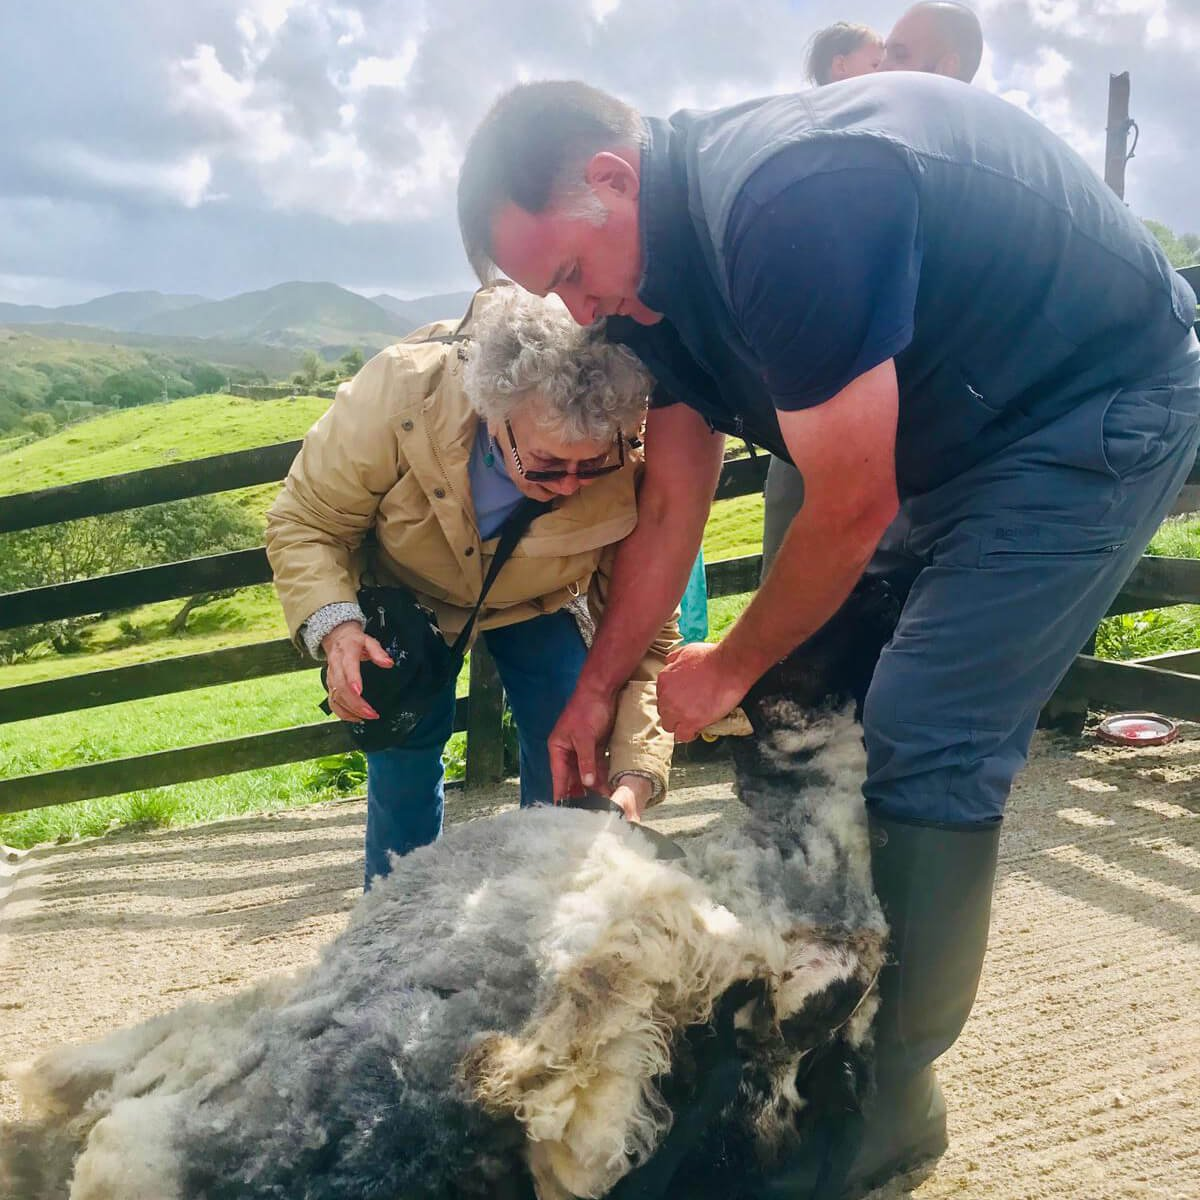 Sheep farmer with tour guest during summer in Ireland